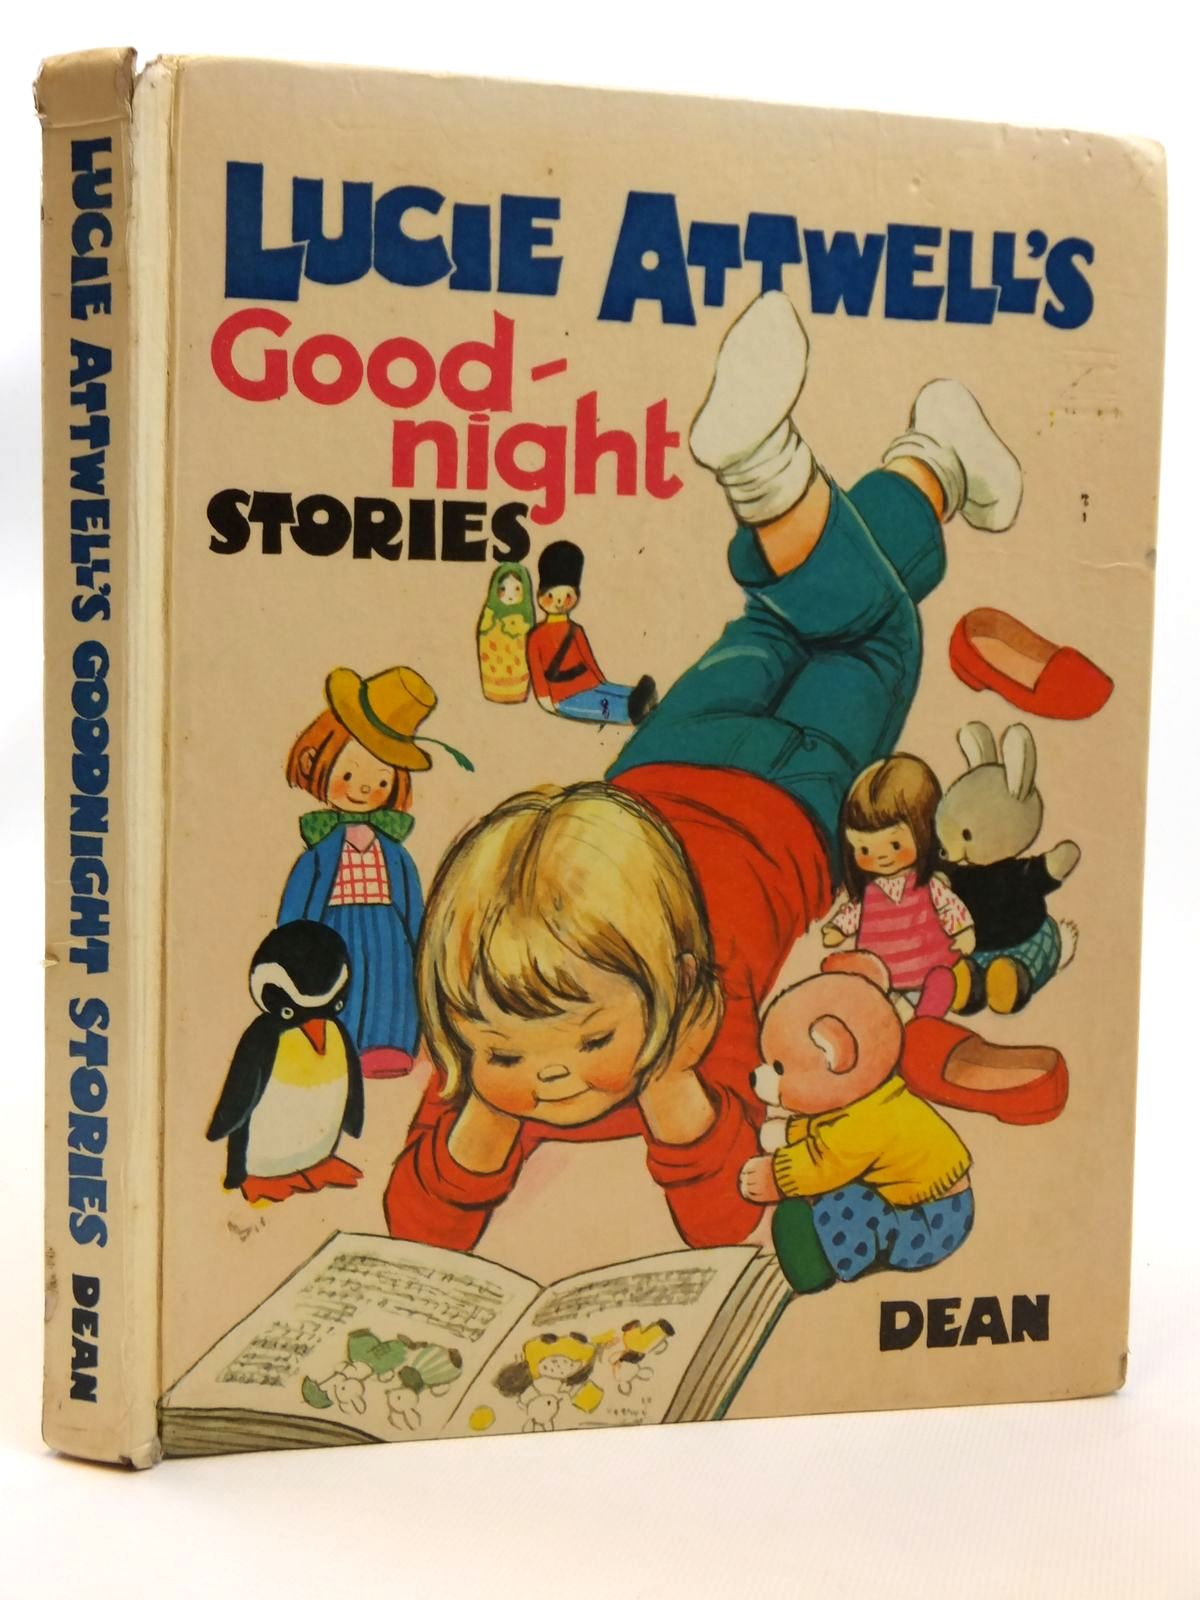 Photo of LUCIE ATTWELL'S GOOD-NIGHT STORIES written by Attwell, Mabel Lucie Dowle, Barbara Close, Eunice Douglas, Penelope et al,  illustrated by Attwell, Mabel Lucie published by Dean & Son Ltd. (STOCK CODE: 2121465)  for sale by Stella & Rose's Books